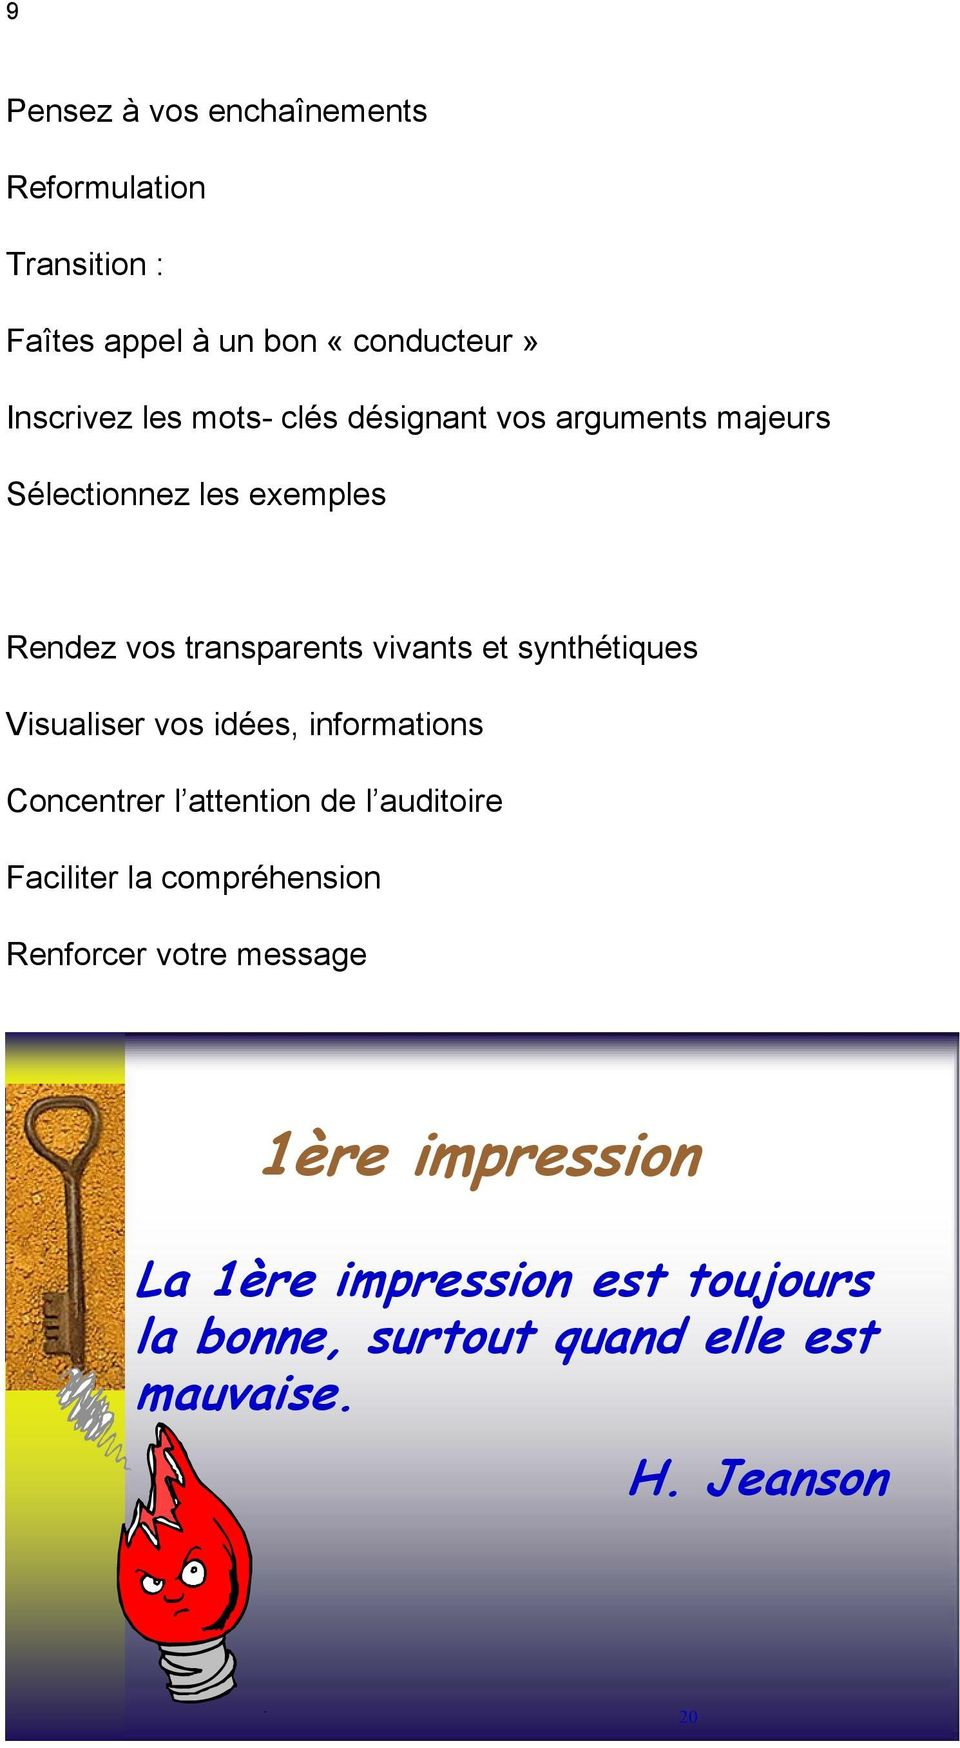 Visualiser vos idées, informations Concentrer l attention de l auditoire Faciliter la compréhension Renforcer